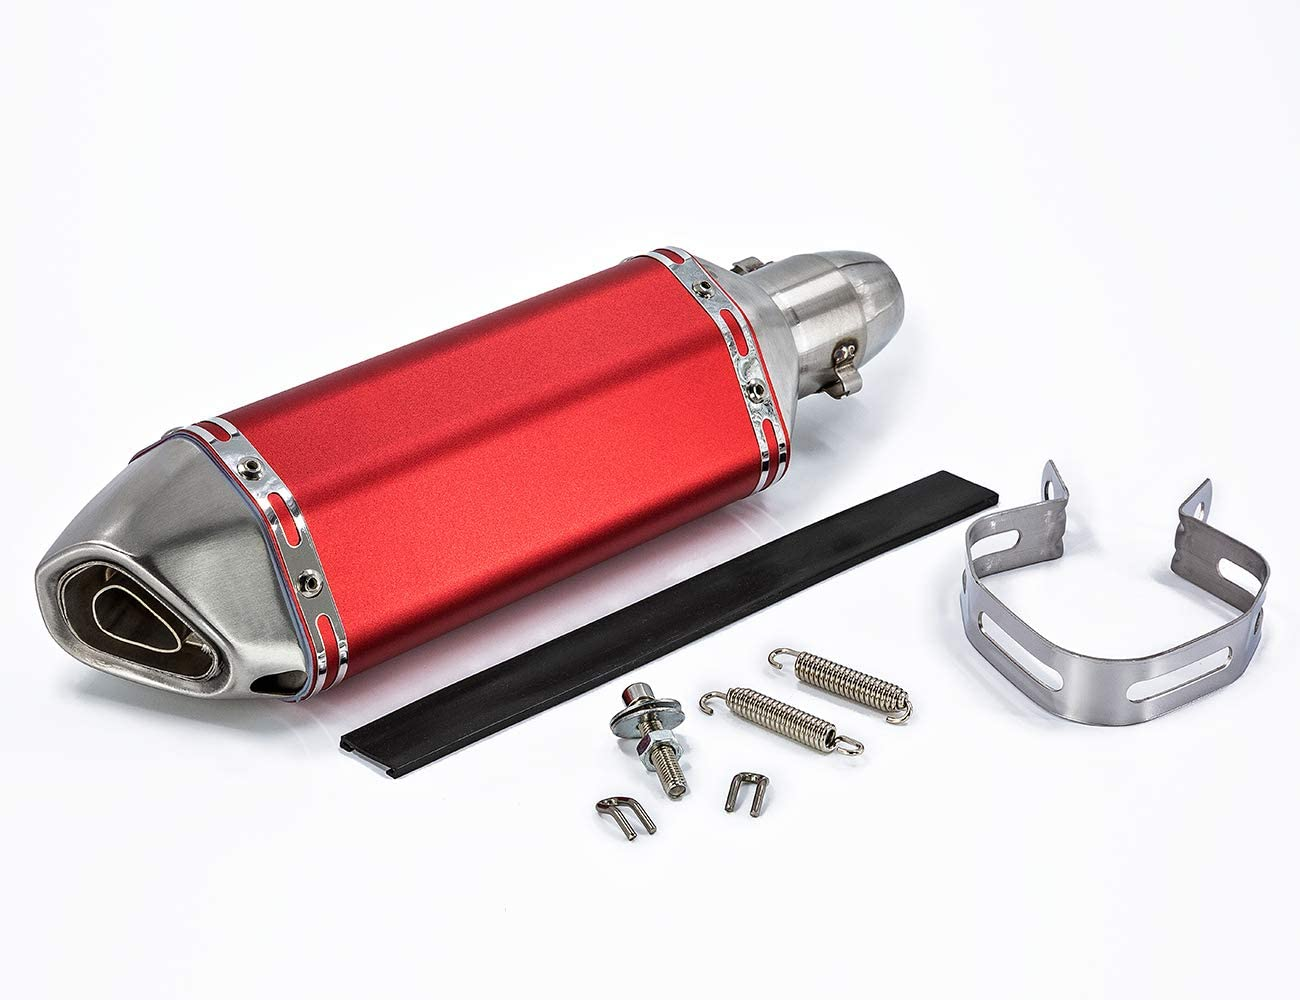 Neeknn Universal Red 1.5-2 Inlet Motorcycles Scooters Exhaust Muffler Pipe with Removable DB Killer for Dirt Bike Street Bike Scooter ATV Racing